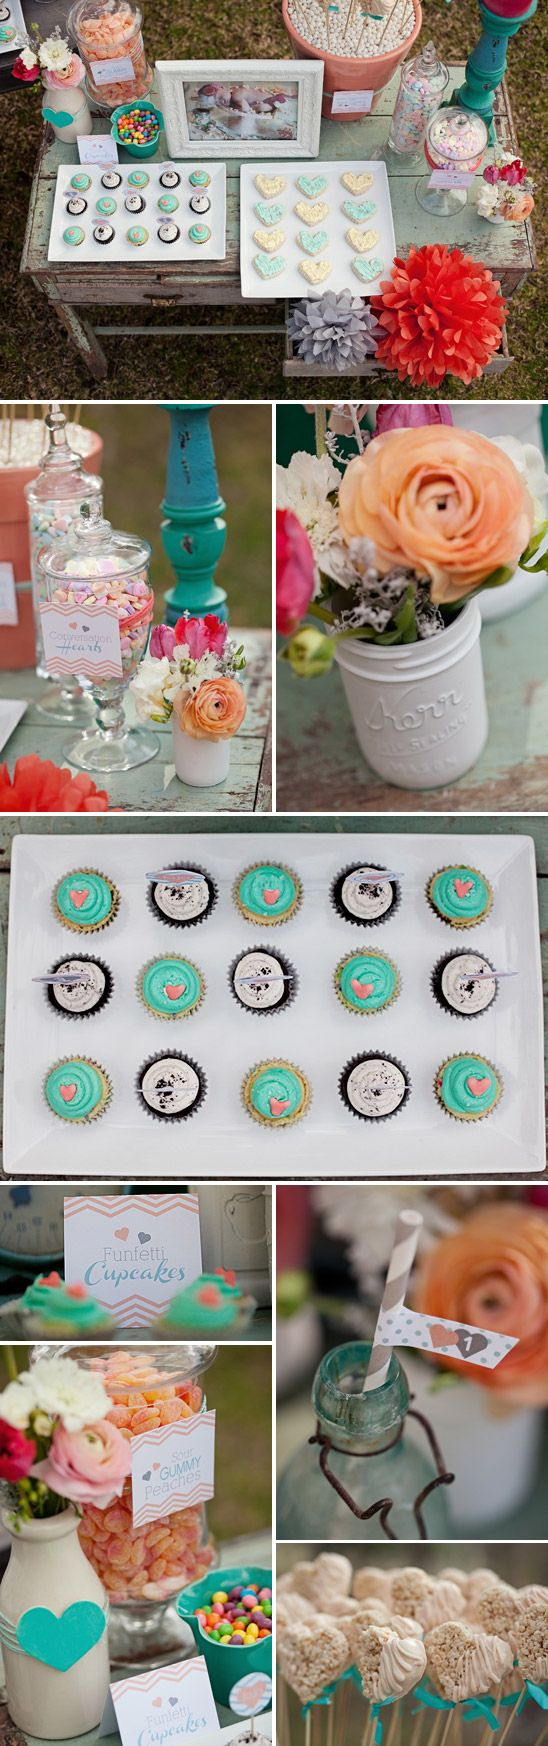 First Birthday Party: Theme Birthday Parties, Cute Parties Ideas, 1St Ideas, First Birthday Parties, Des Cupcakes, Colors Schemes, First Birthdays, Parties Decor, Birthday Ideas